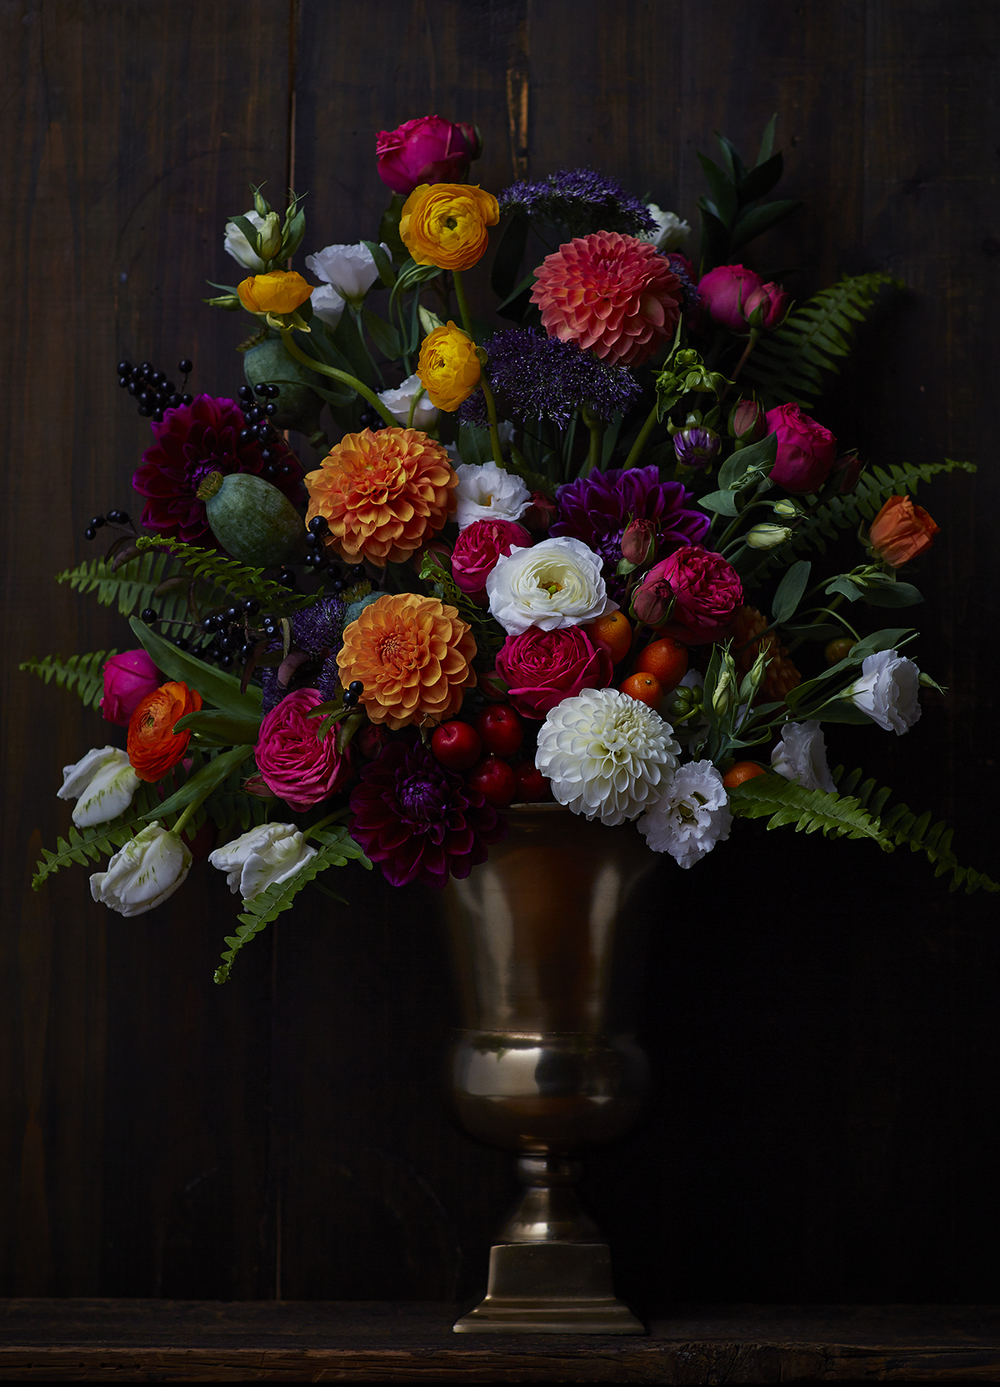 Colour & Plenty | Display florals inspired by Old Master still life paintings